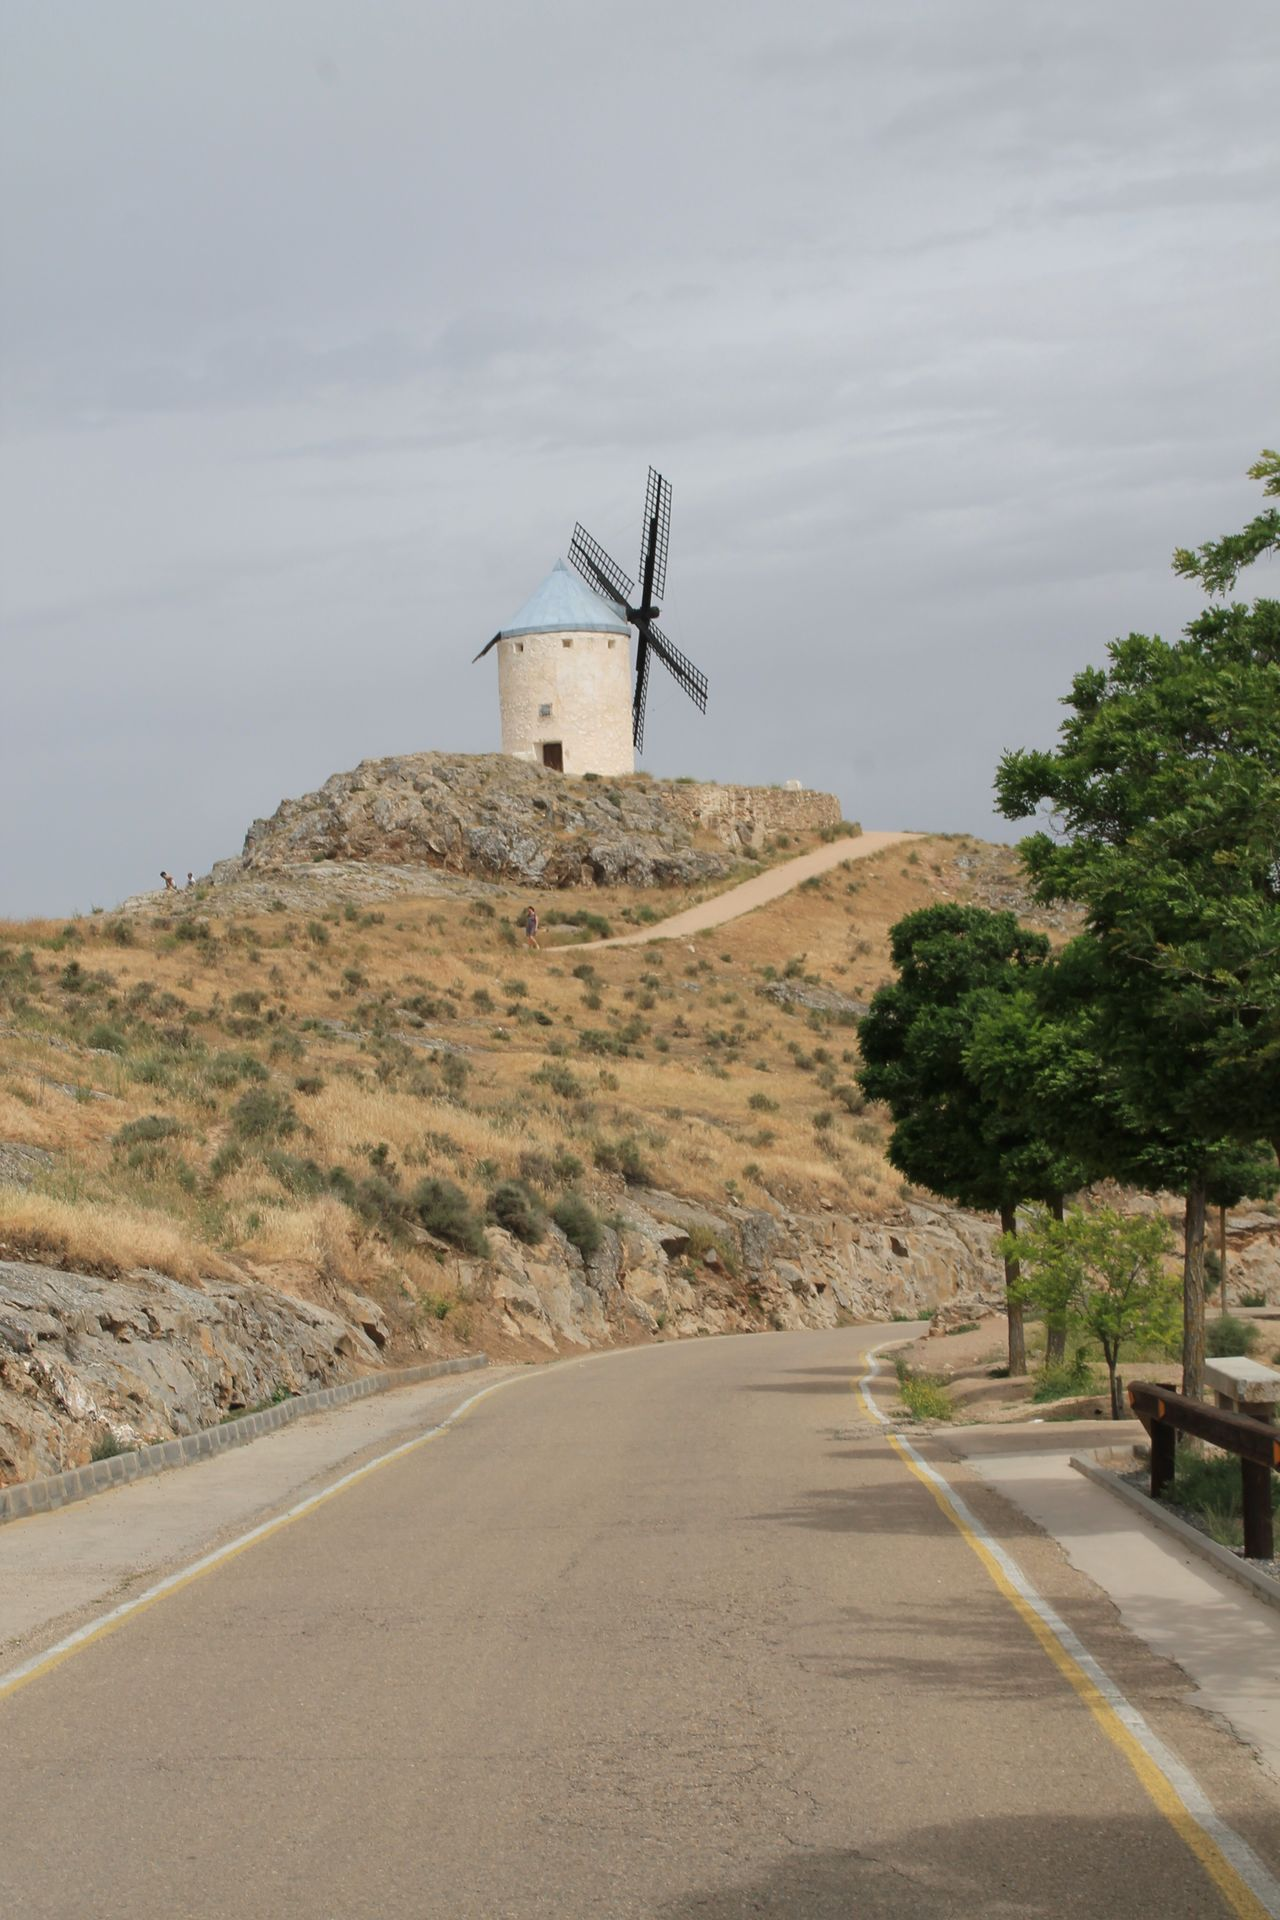 Windmill Wind Power Alternative Energy Wind Turbine Traditional Windmill Built Structure Consuegra Windmill Nature La Mancha Travel Destinations Beauty In Nature Check This Out Hanging Out Cloud - Sky Road Architecture Sky Day The Way Forward No People Outdoors Nature Building Exterior Rural Scene